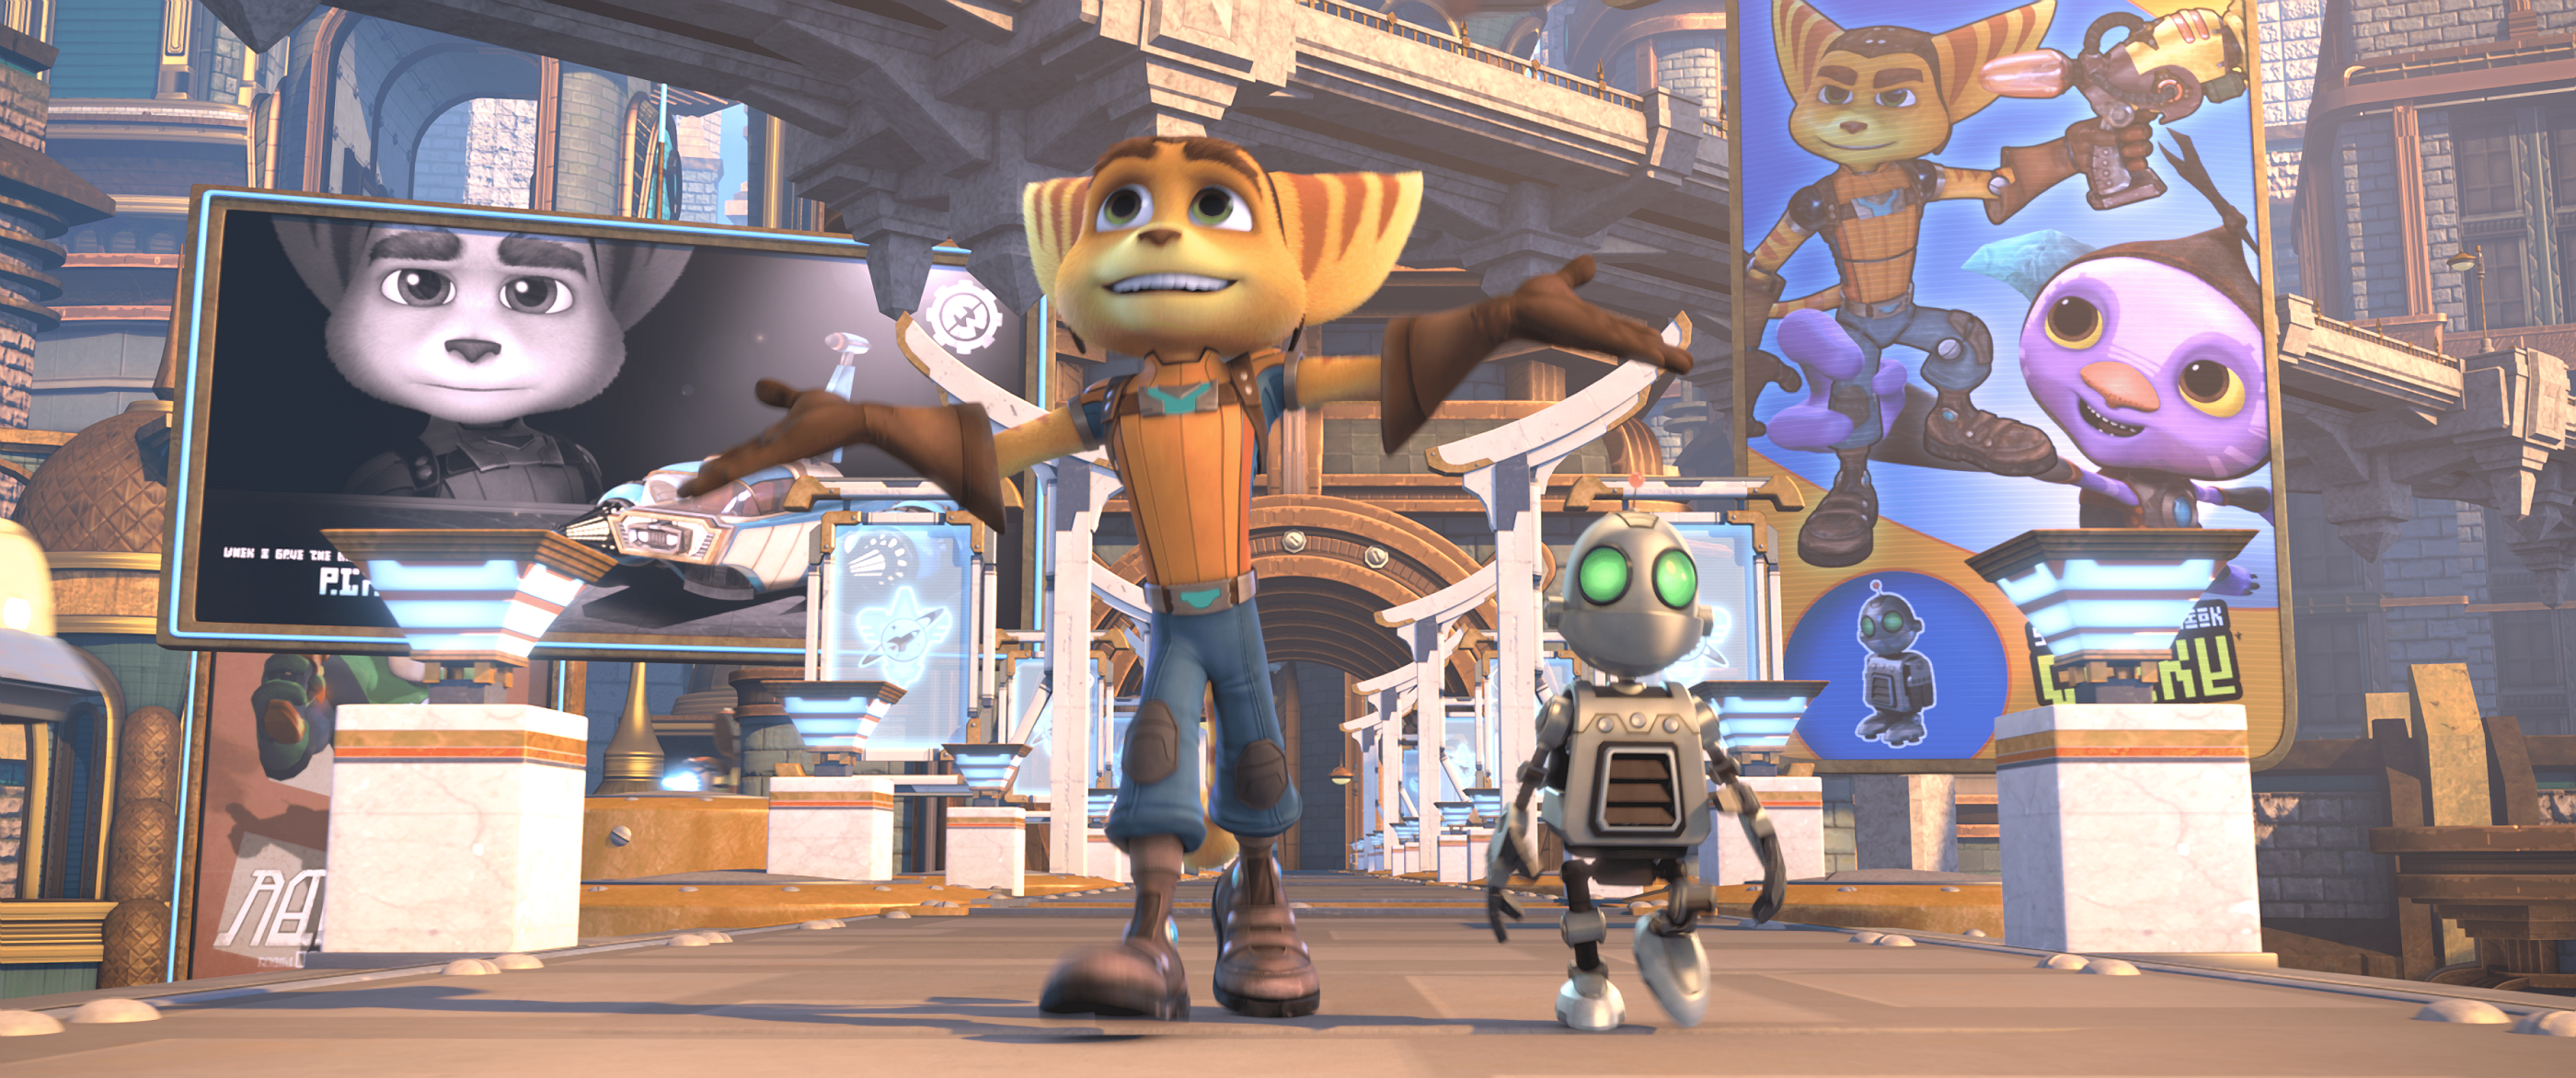 RATCHET AND CLANK LE FILM - BRD